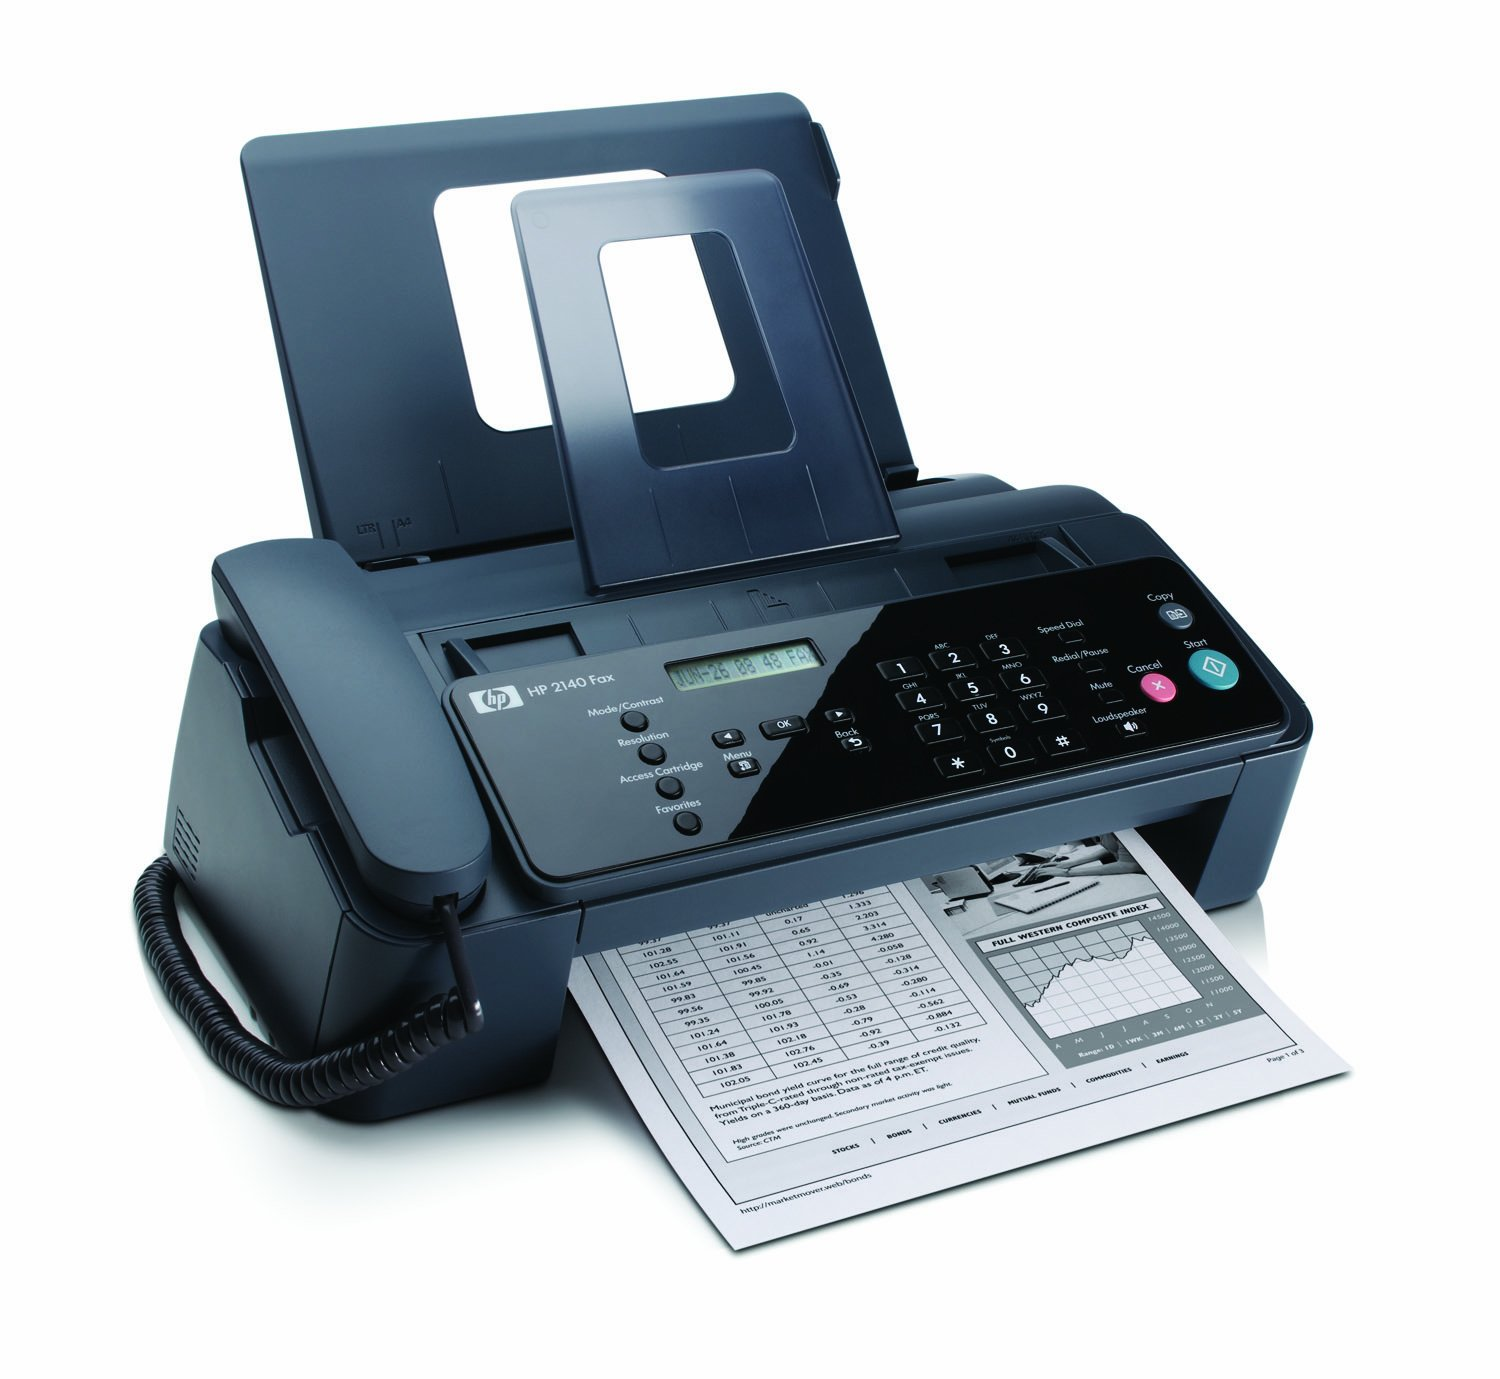 hp cm721a b1h 2140 professional quality plain paper fax amazon in